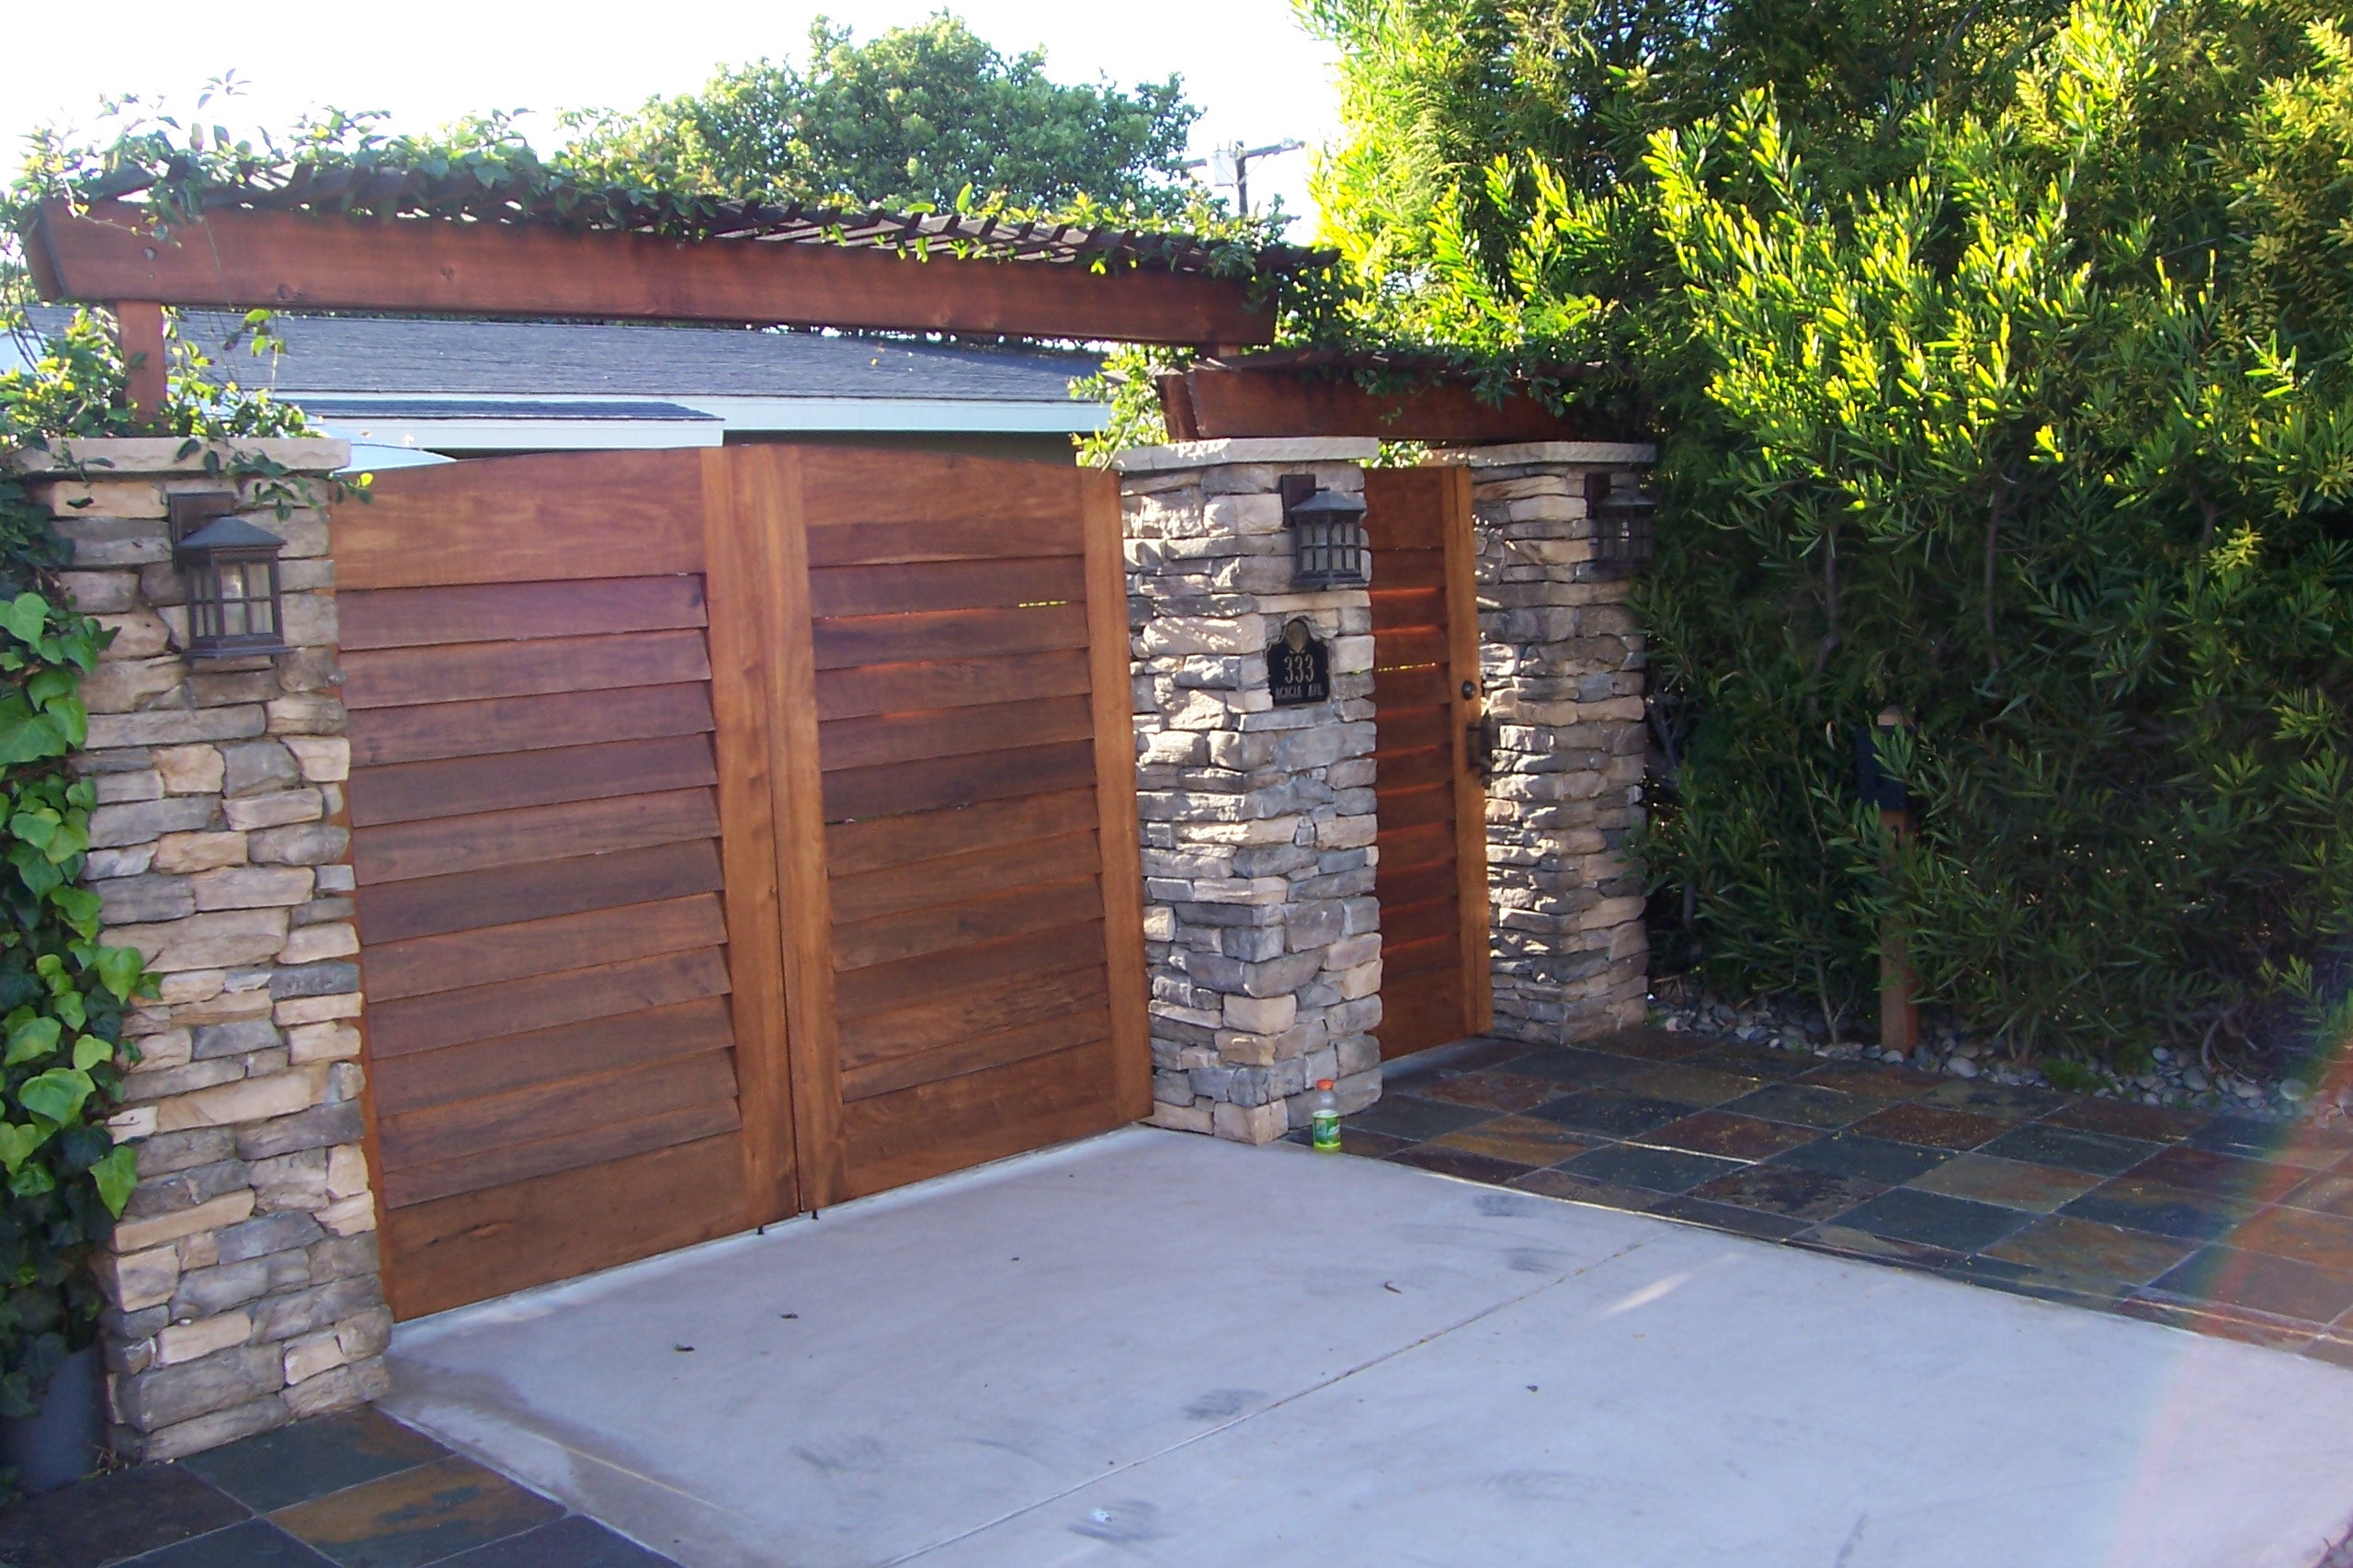 Creative fences, gates and enclosures in San Diego – part 2